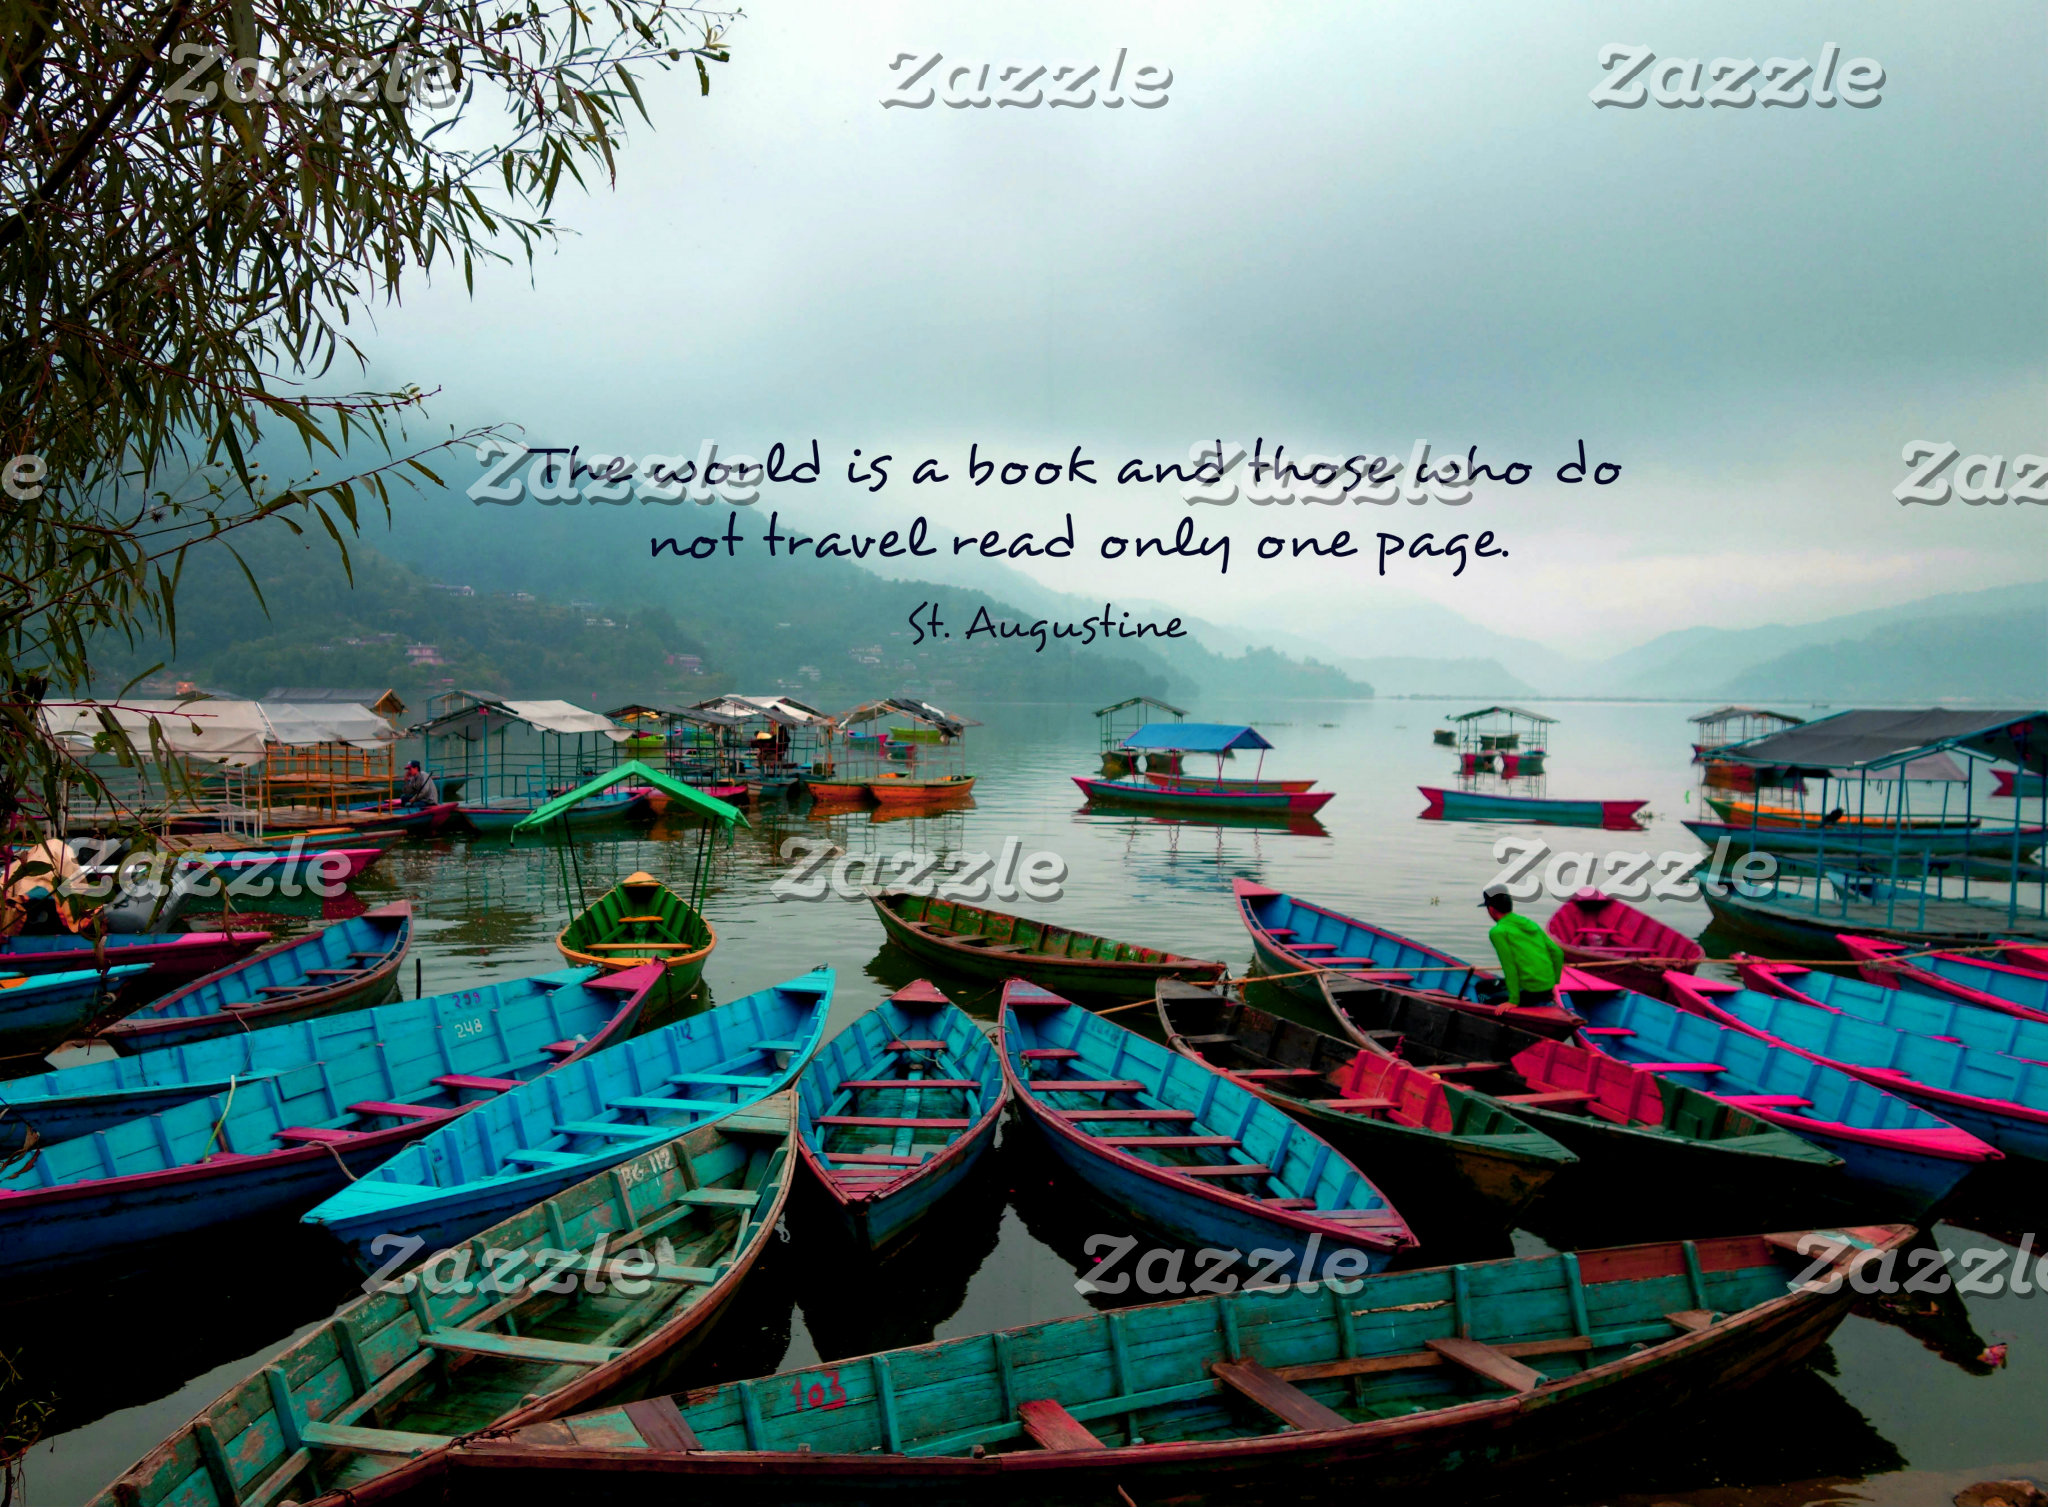 The world is a book and those who do not travel re